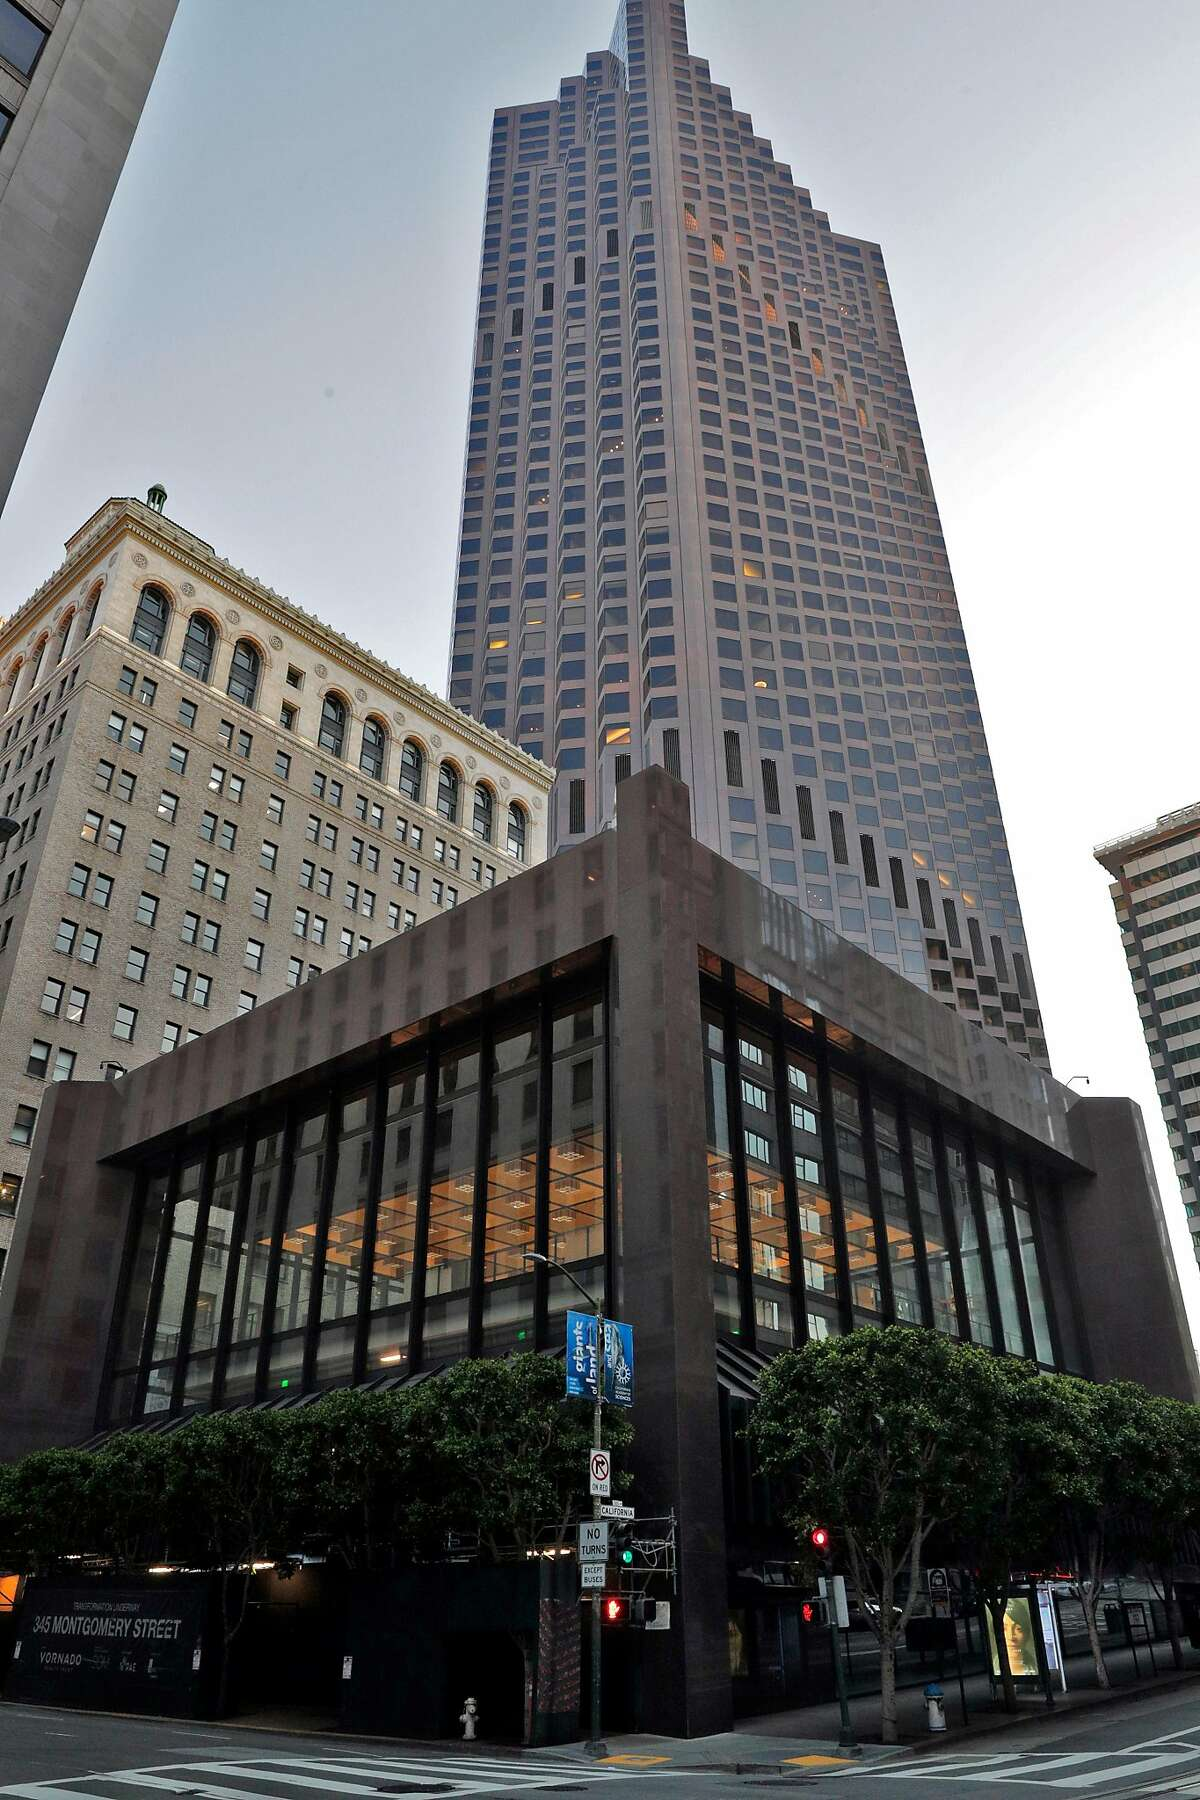 The exterior of 345 Montgomery with 555 California Street visible in the background in San Francisco, Calif., on Wednesday, May 6, 2020. Co-working giant Regus has walked away from a 15-year lease worth $90 million at 345 Montgomery St., the former bank of America banking hall co-owned by Vornado and the Trump Organization which also owns 555 California Street.